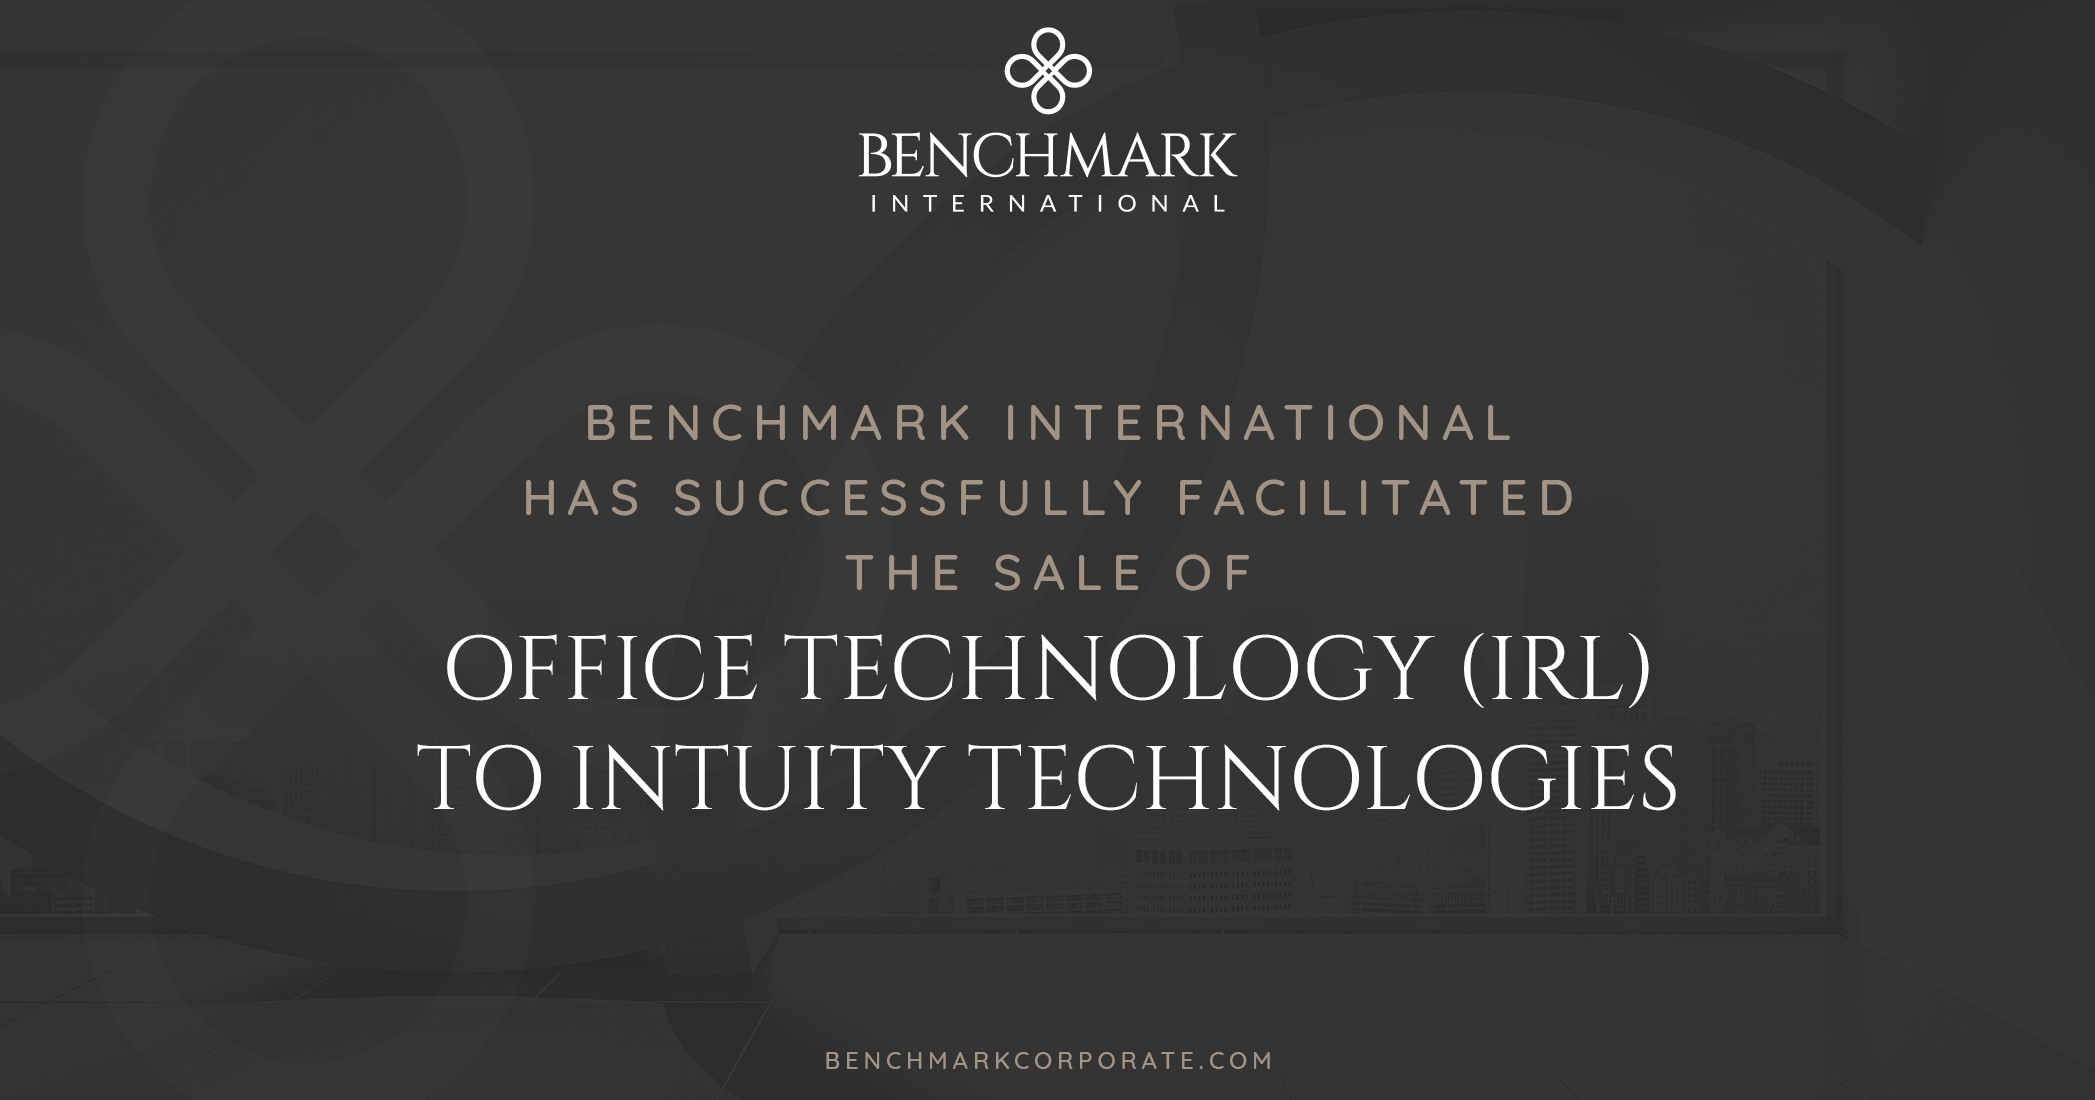 Benchmark International Completes the Sale of Office Technology (Irl) to Intuity Technologies